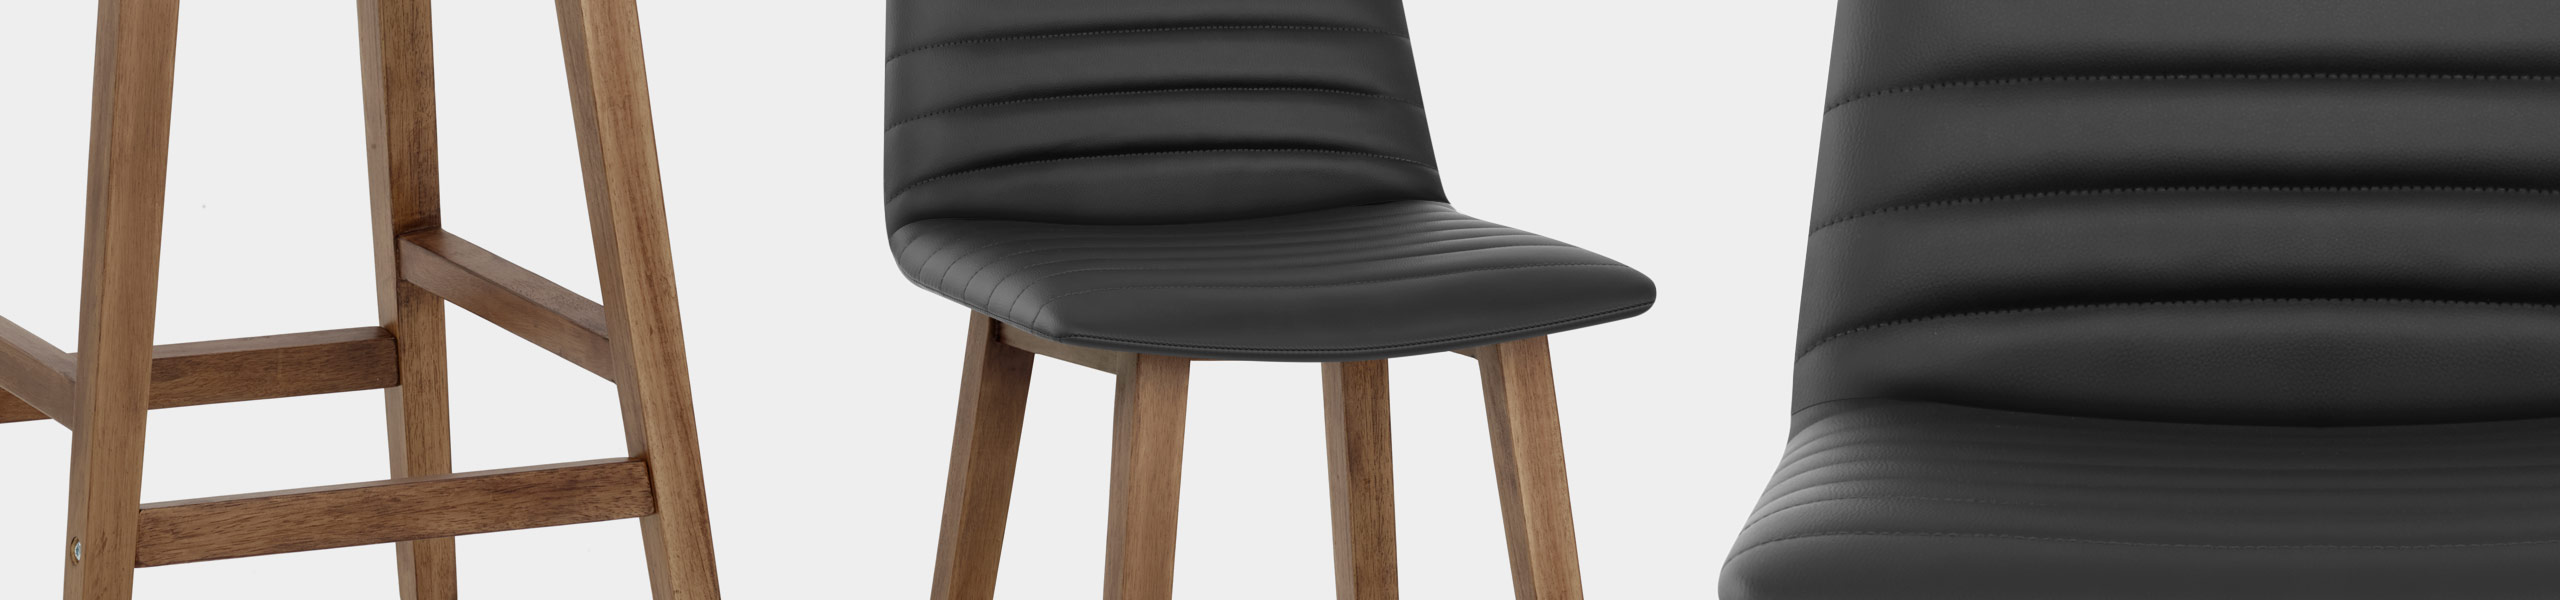 Spritz Wooden Stool Black Video Banner